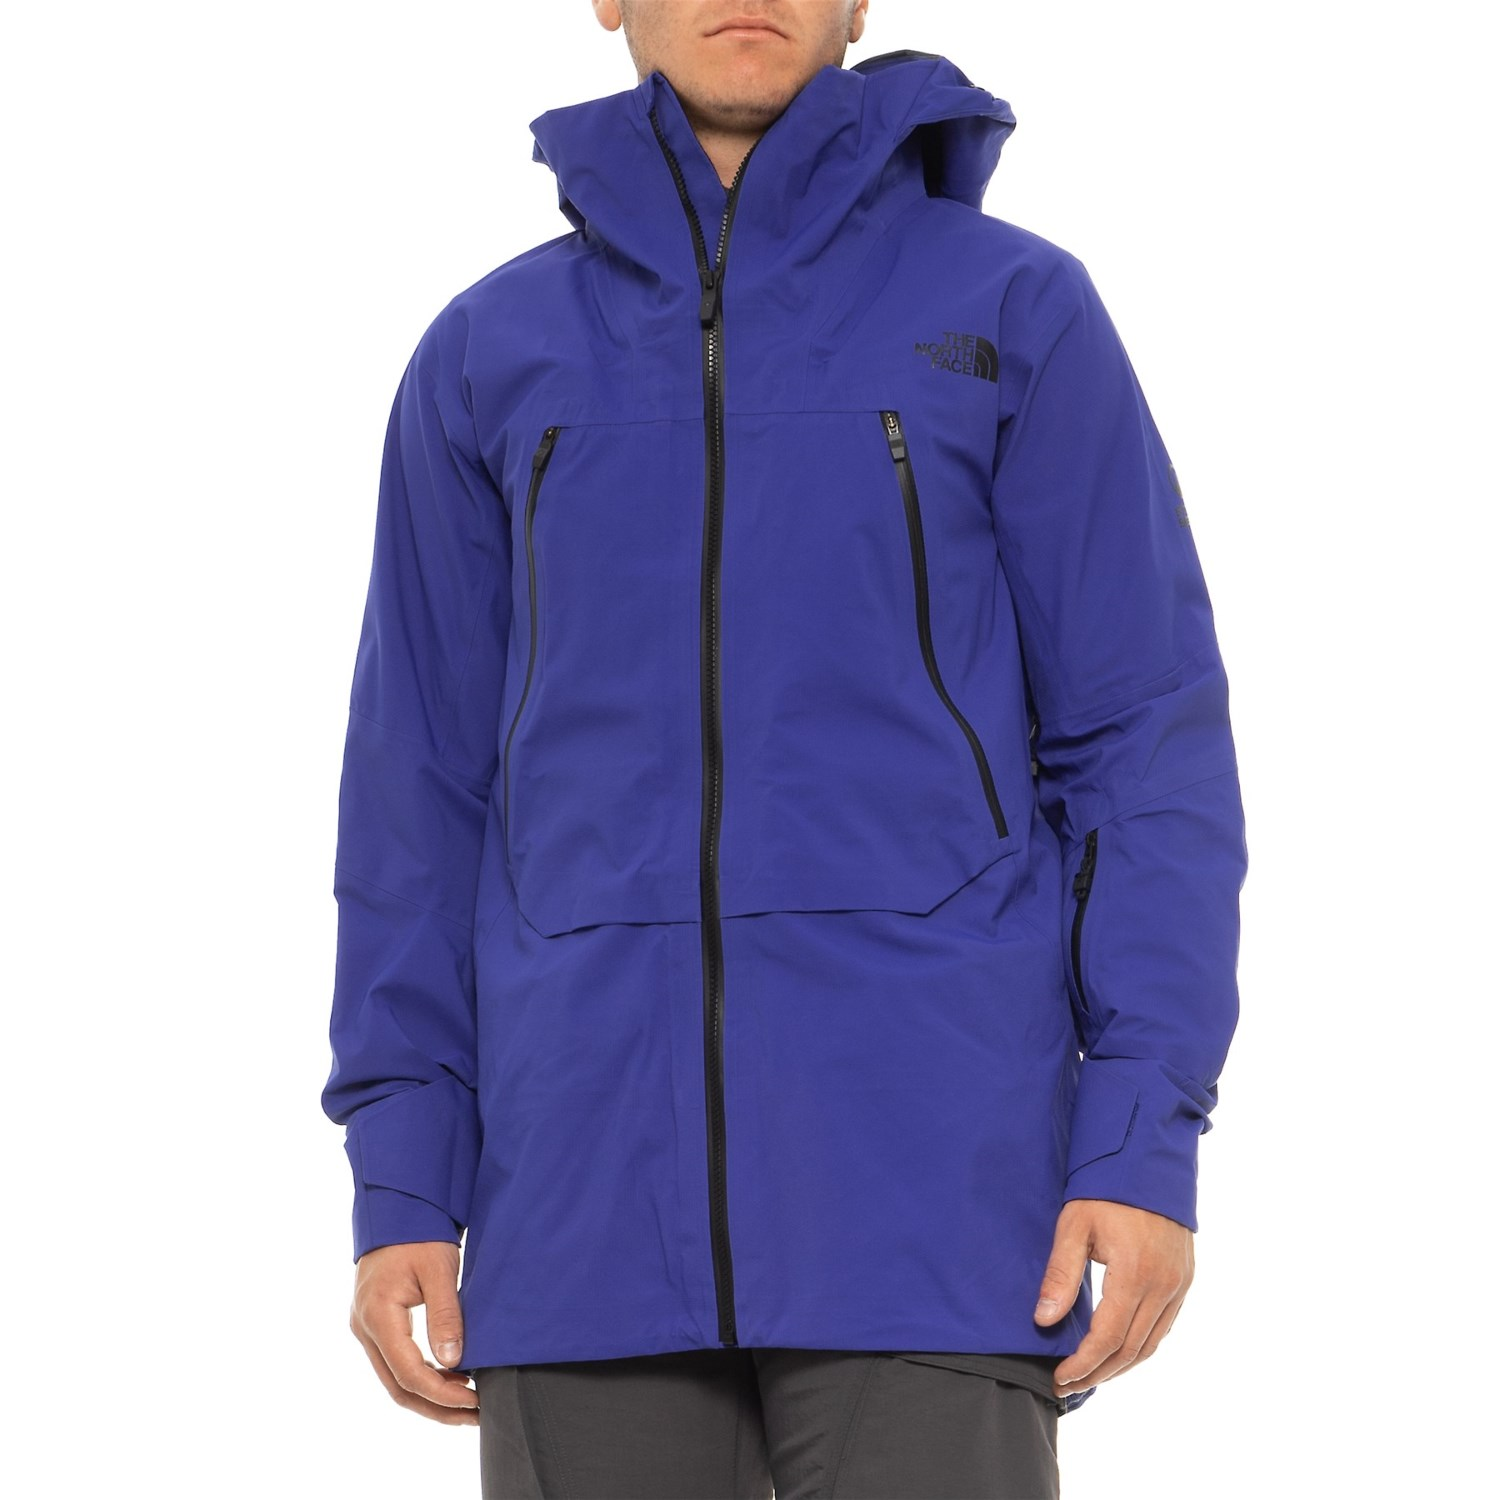 dd68a0681ec2 North Face Jackets On Sale